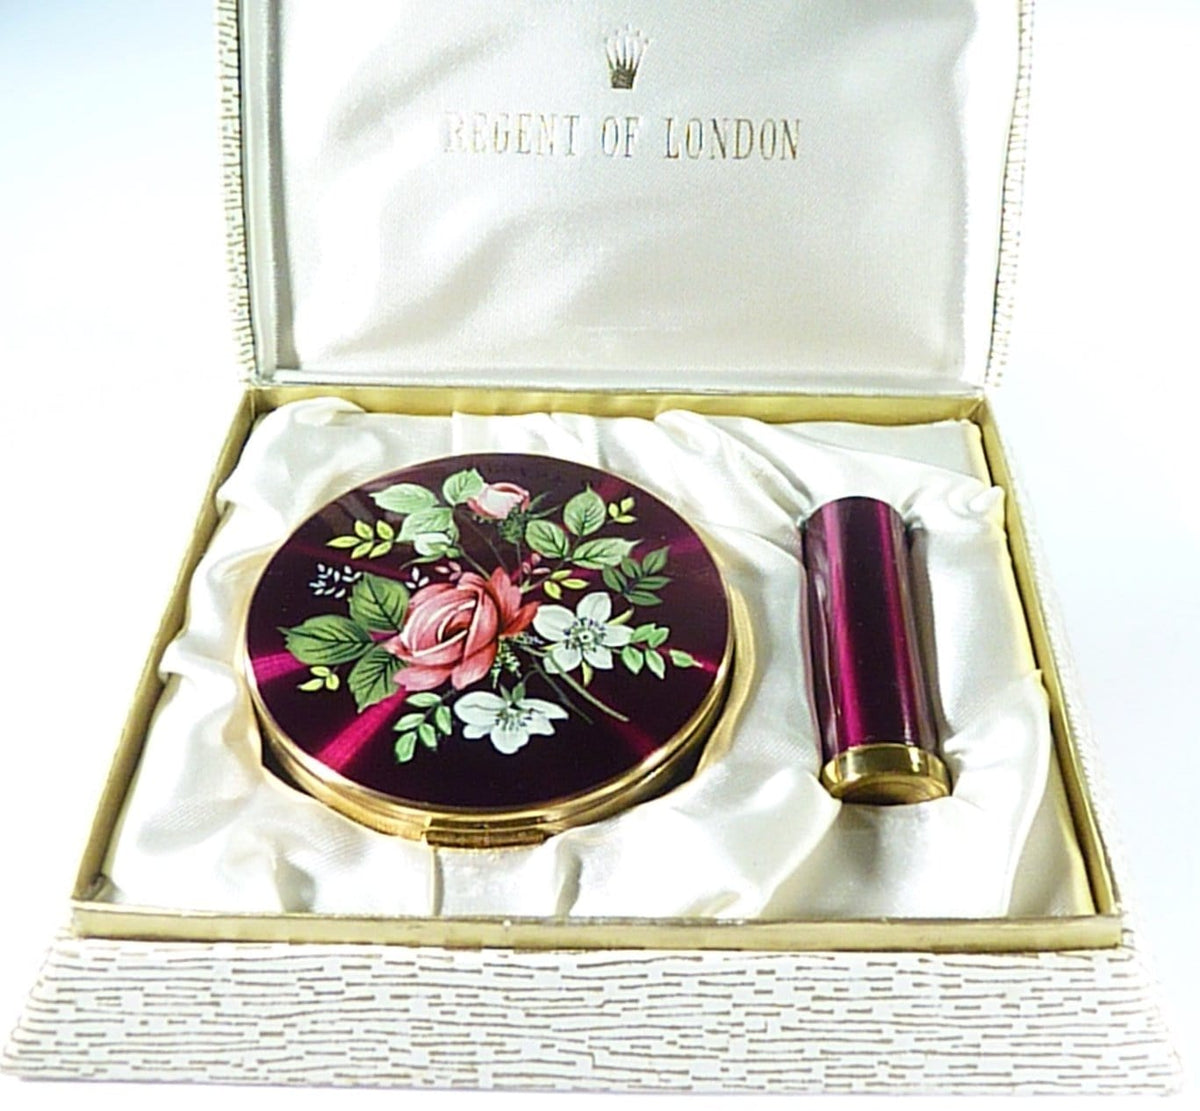 Regent Of London Enamel Vanity Set